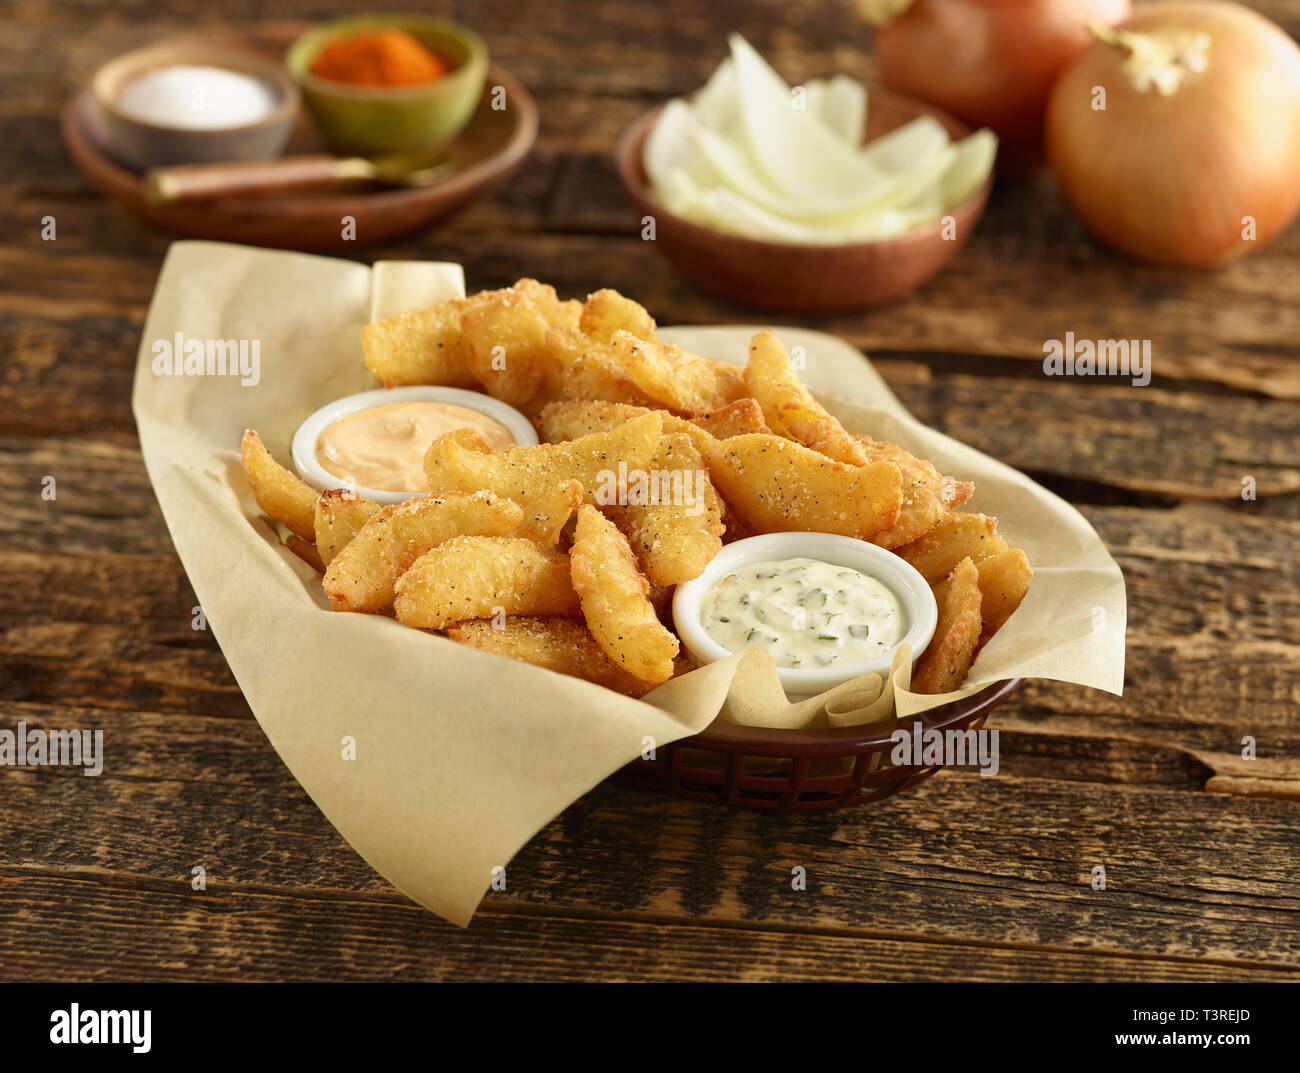 Fried Onion Petals with sauces - Stock Image